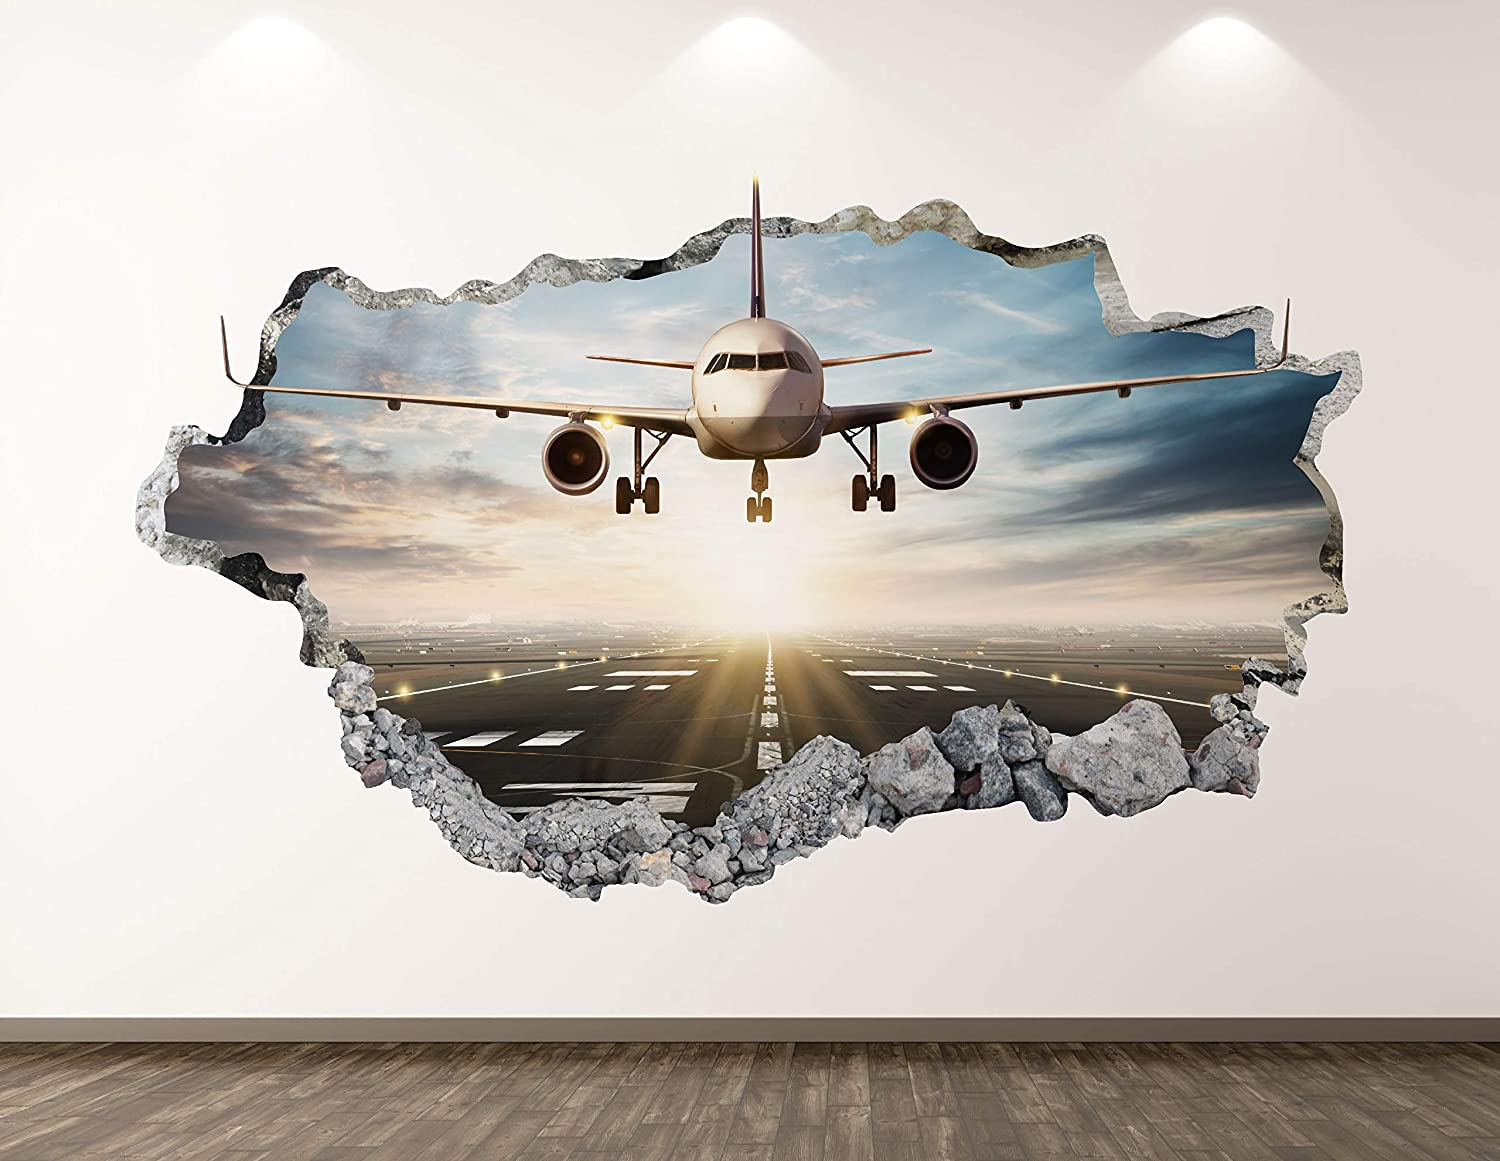 "West Mountain Landing Airplane Wall Decal Art Decor 3D Smashed Airport Plane Sticker Poster Kids Room Mural Custom Gift BL195 (22"" W x 14"" H)"